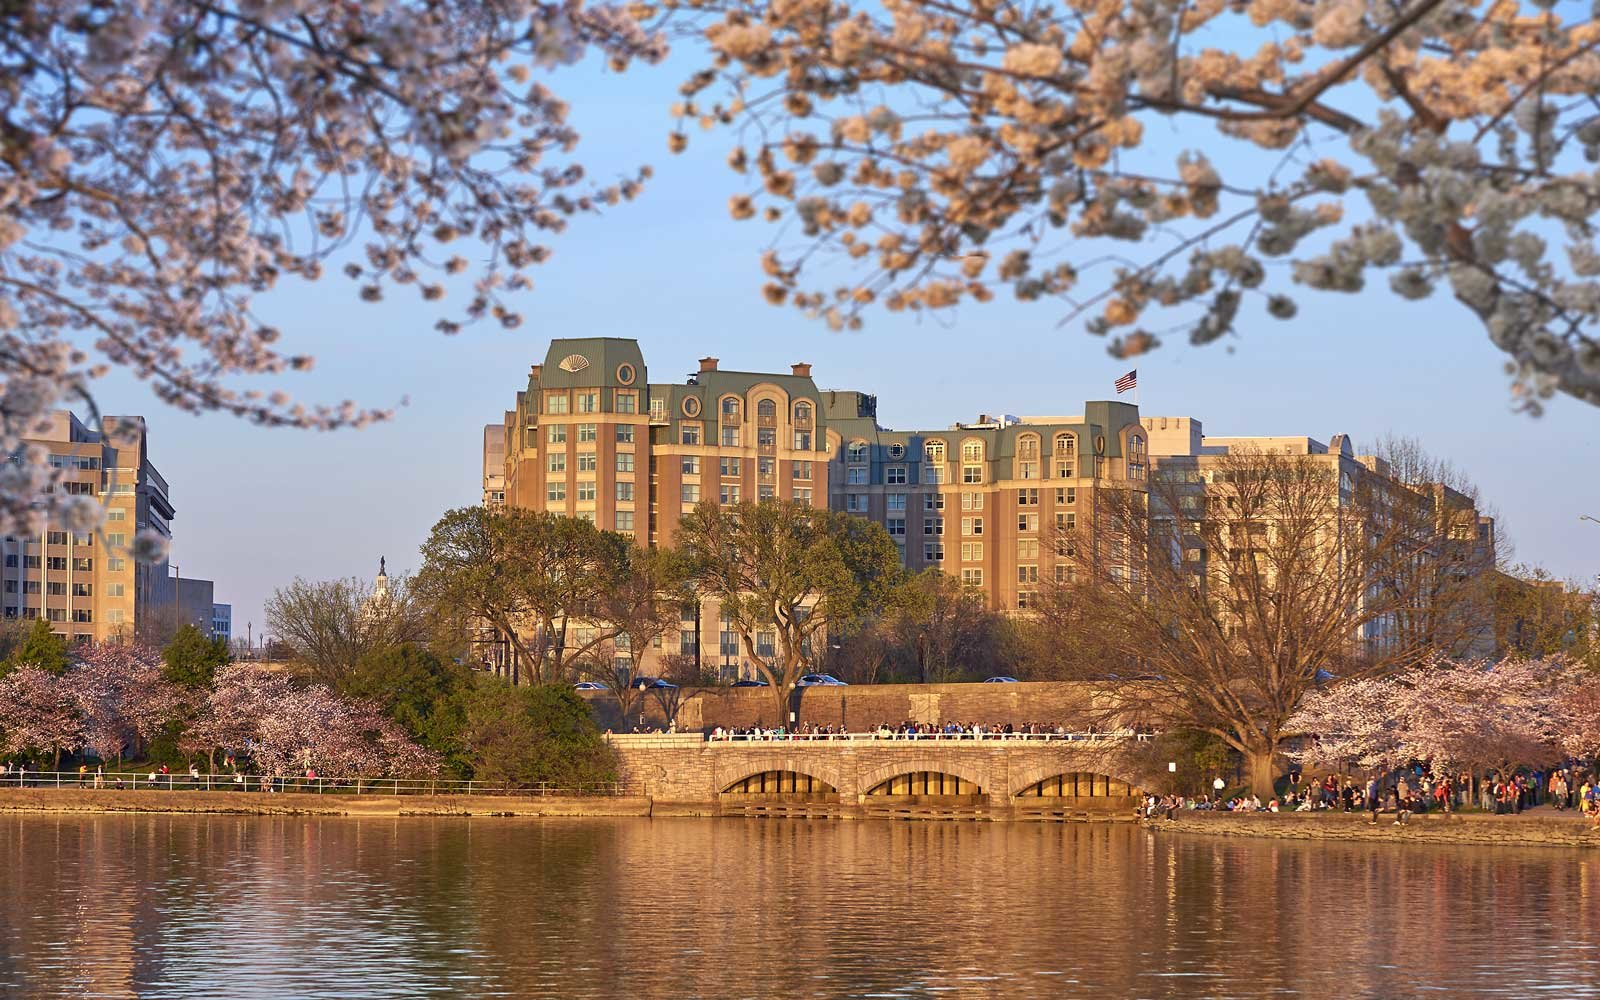 The Top 10 Hotels in Washington, D.C.